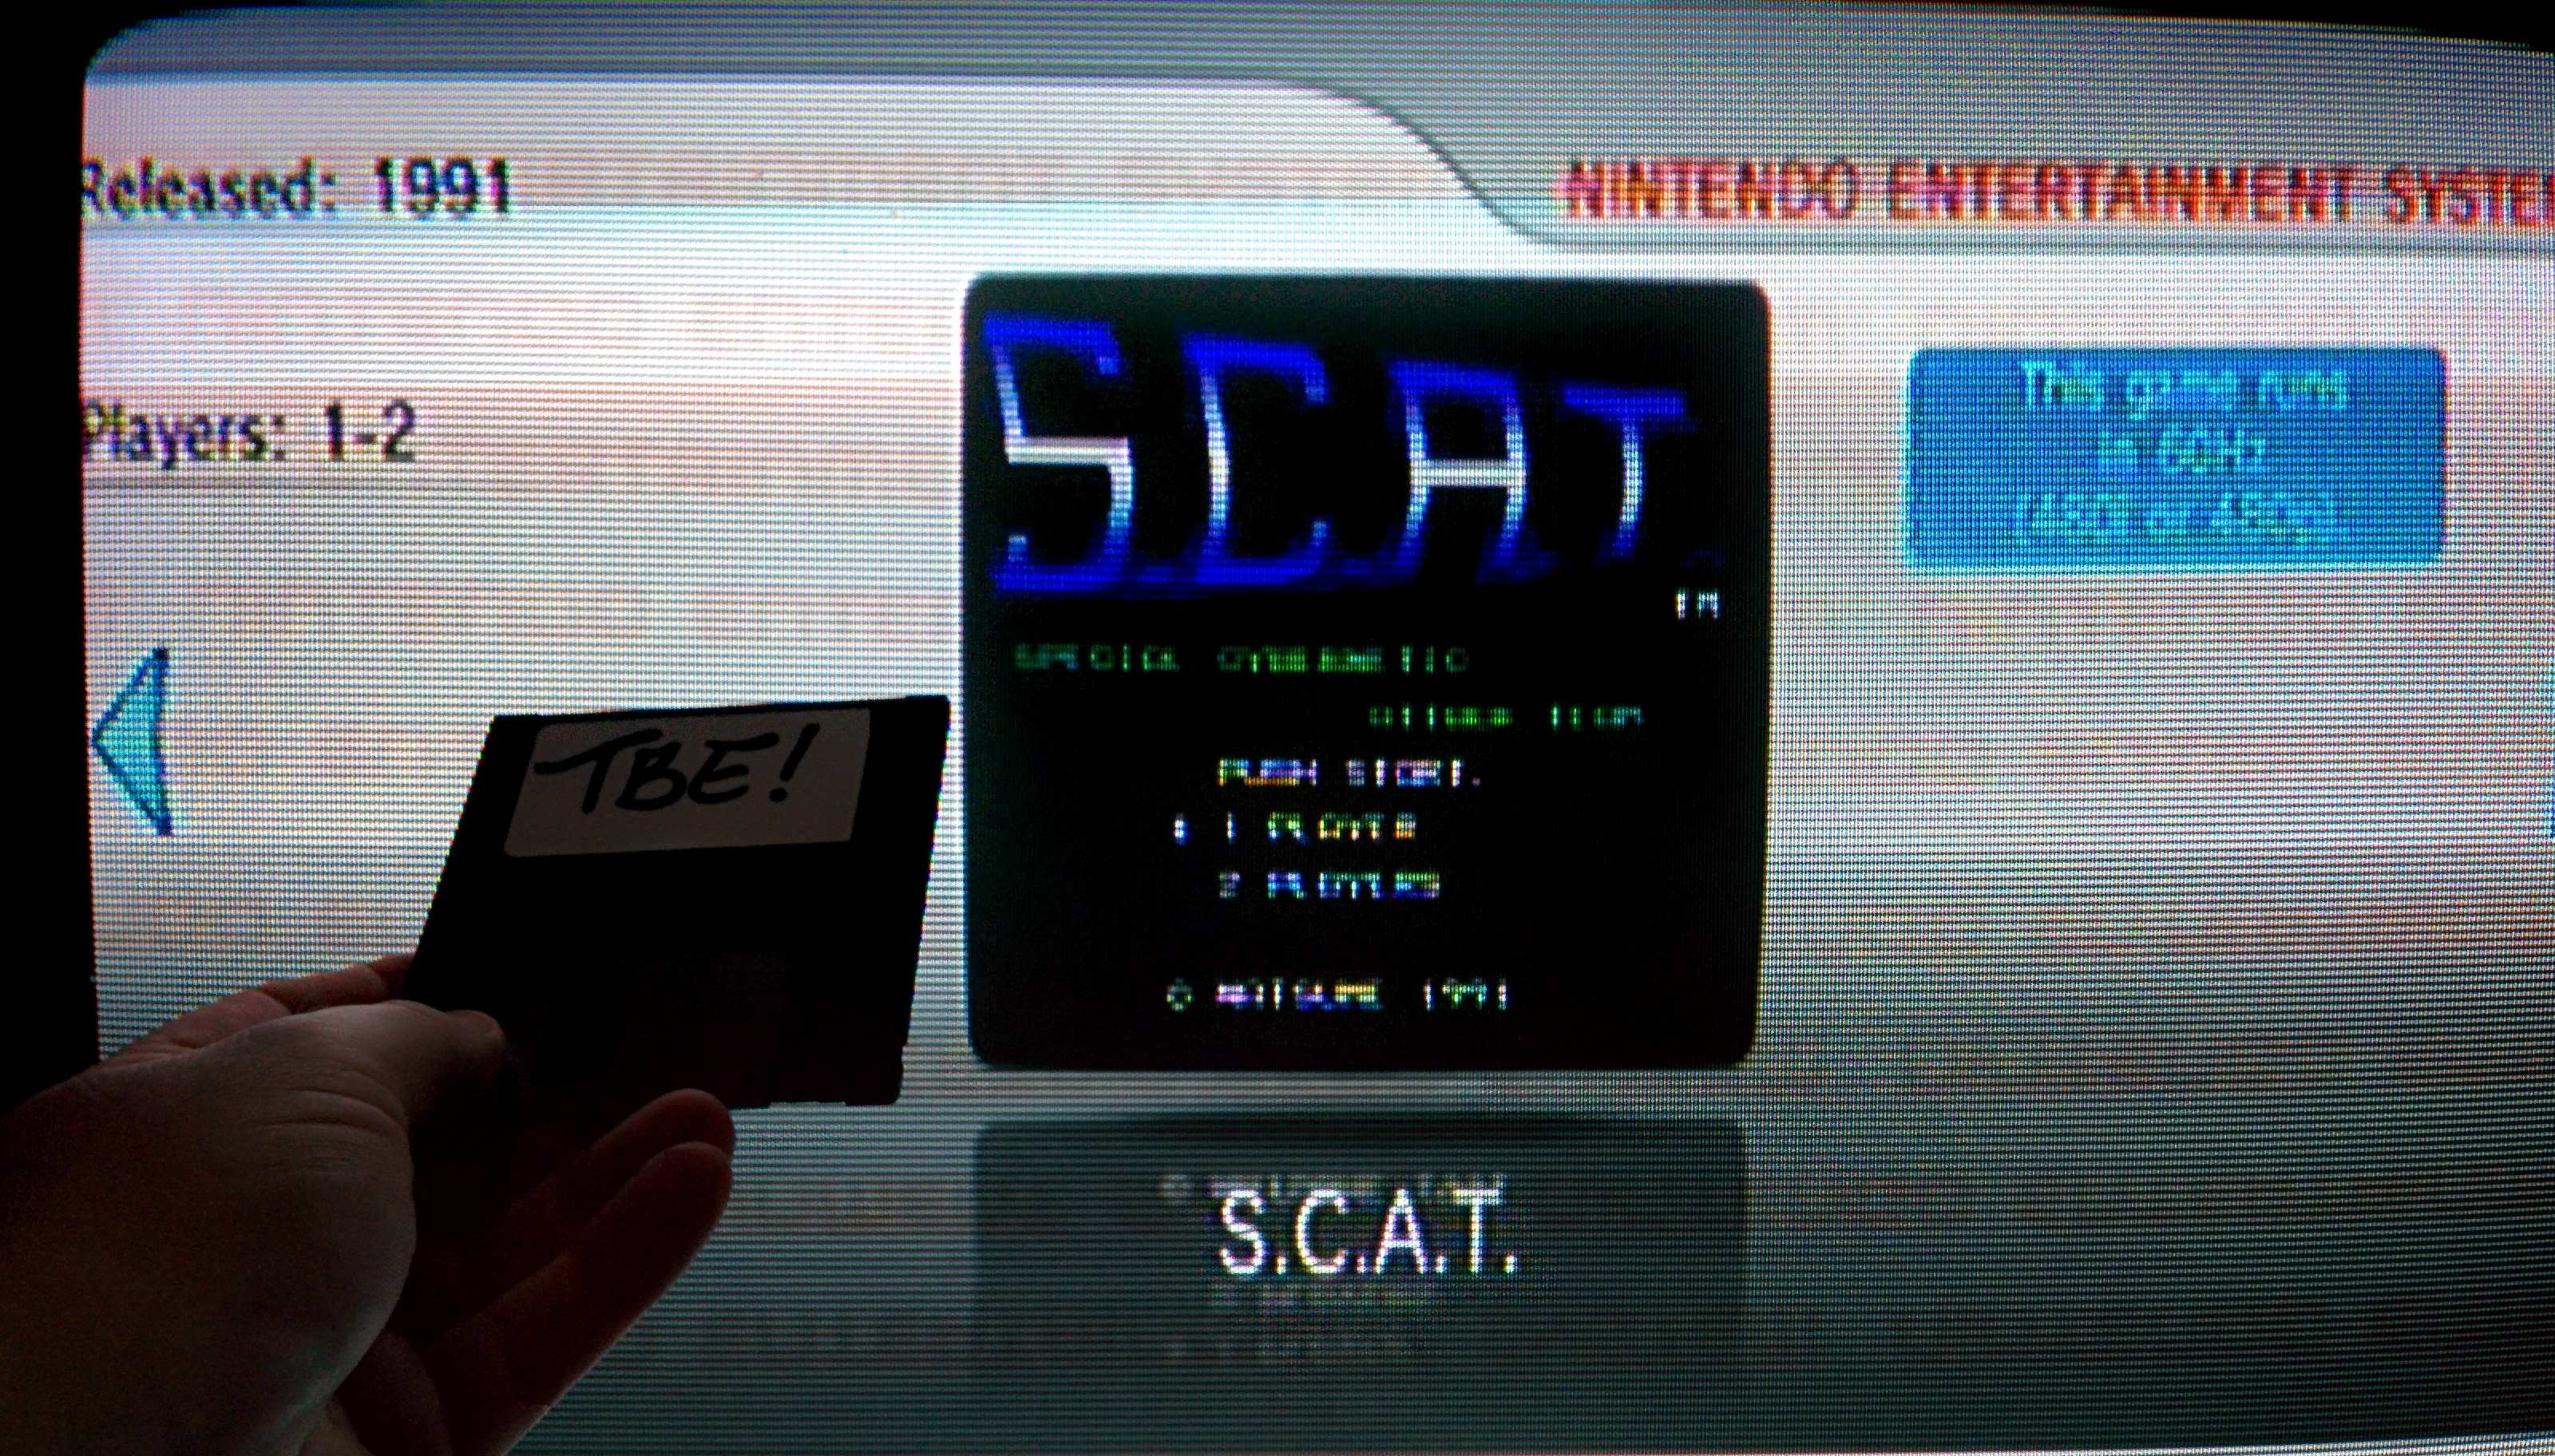 Sixx: S.C.A.T.: Special Cybernetic Attack Team (Wii Virtual Console: NES) 24,030 points on 2014-11-22 16:00:47